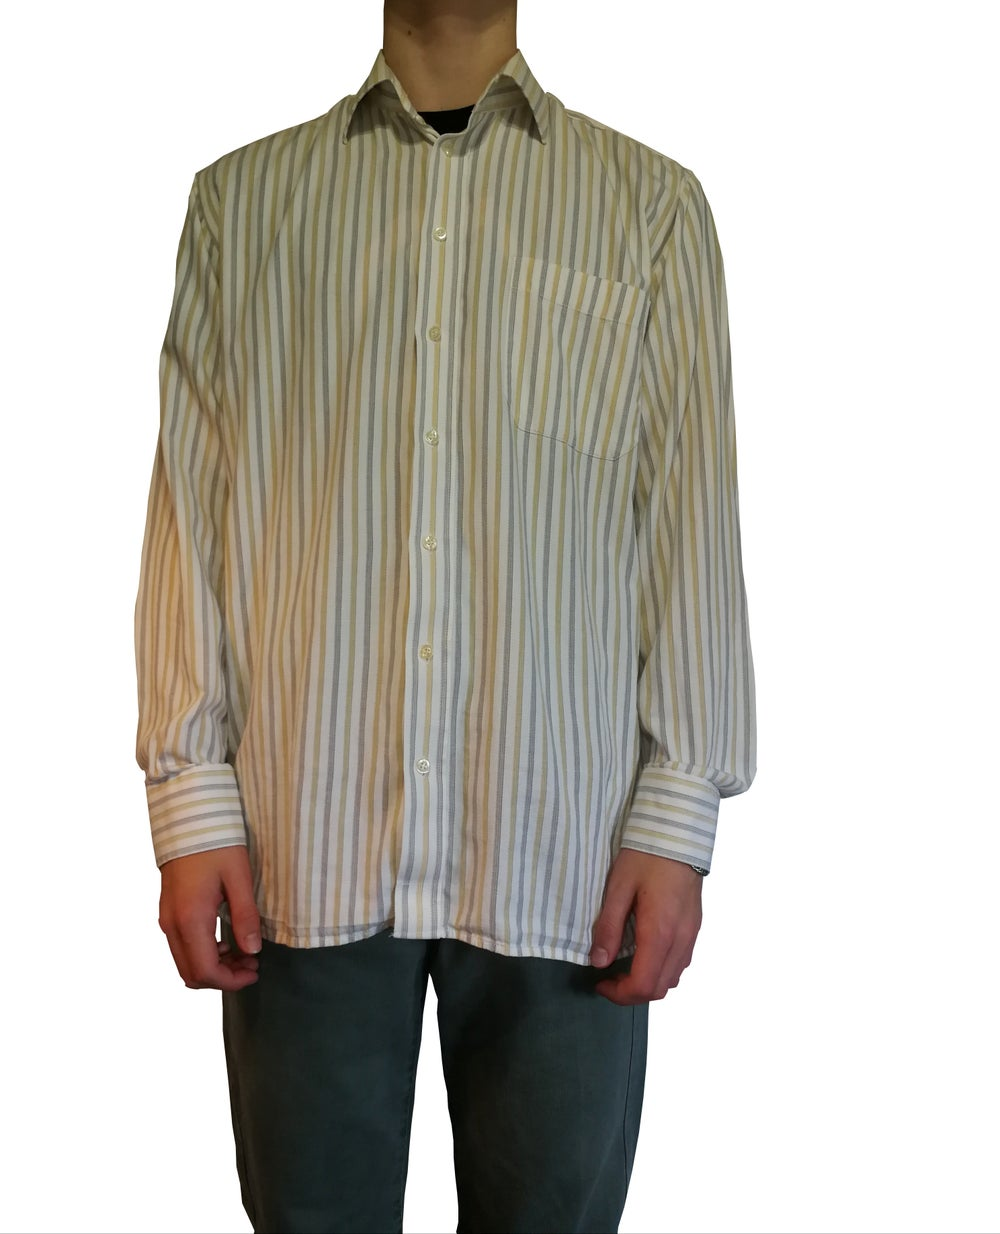 Image of Long sleeve striped shirt